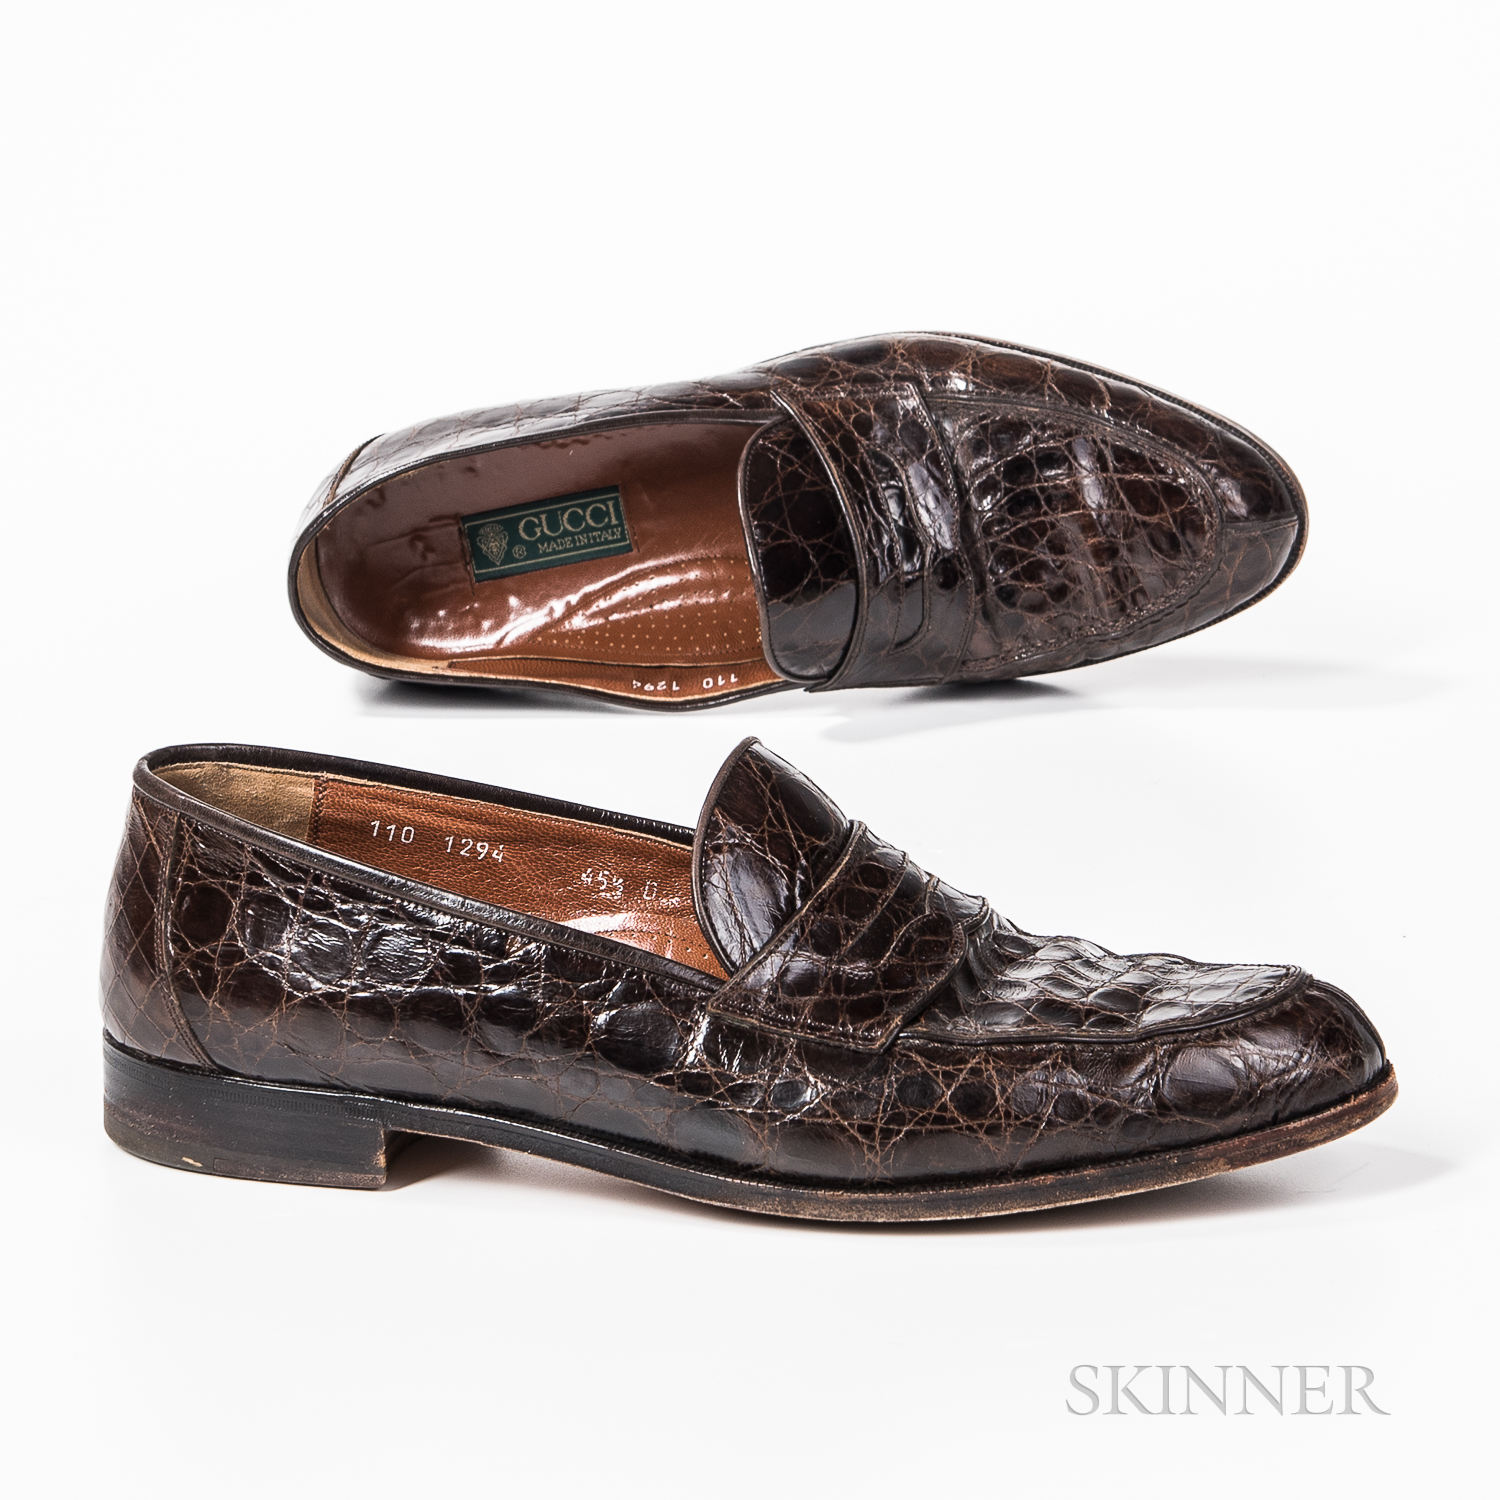 Pair of Men's Gucci Loafers